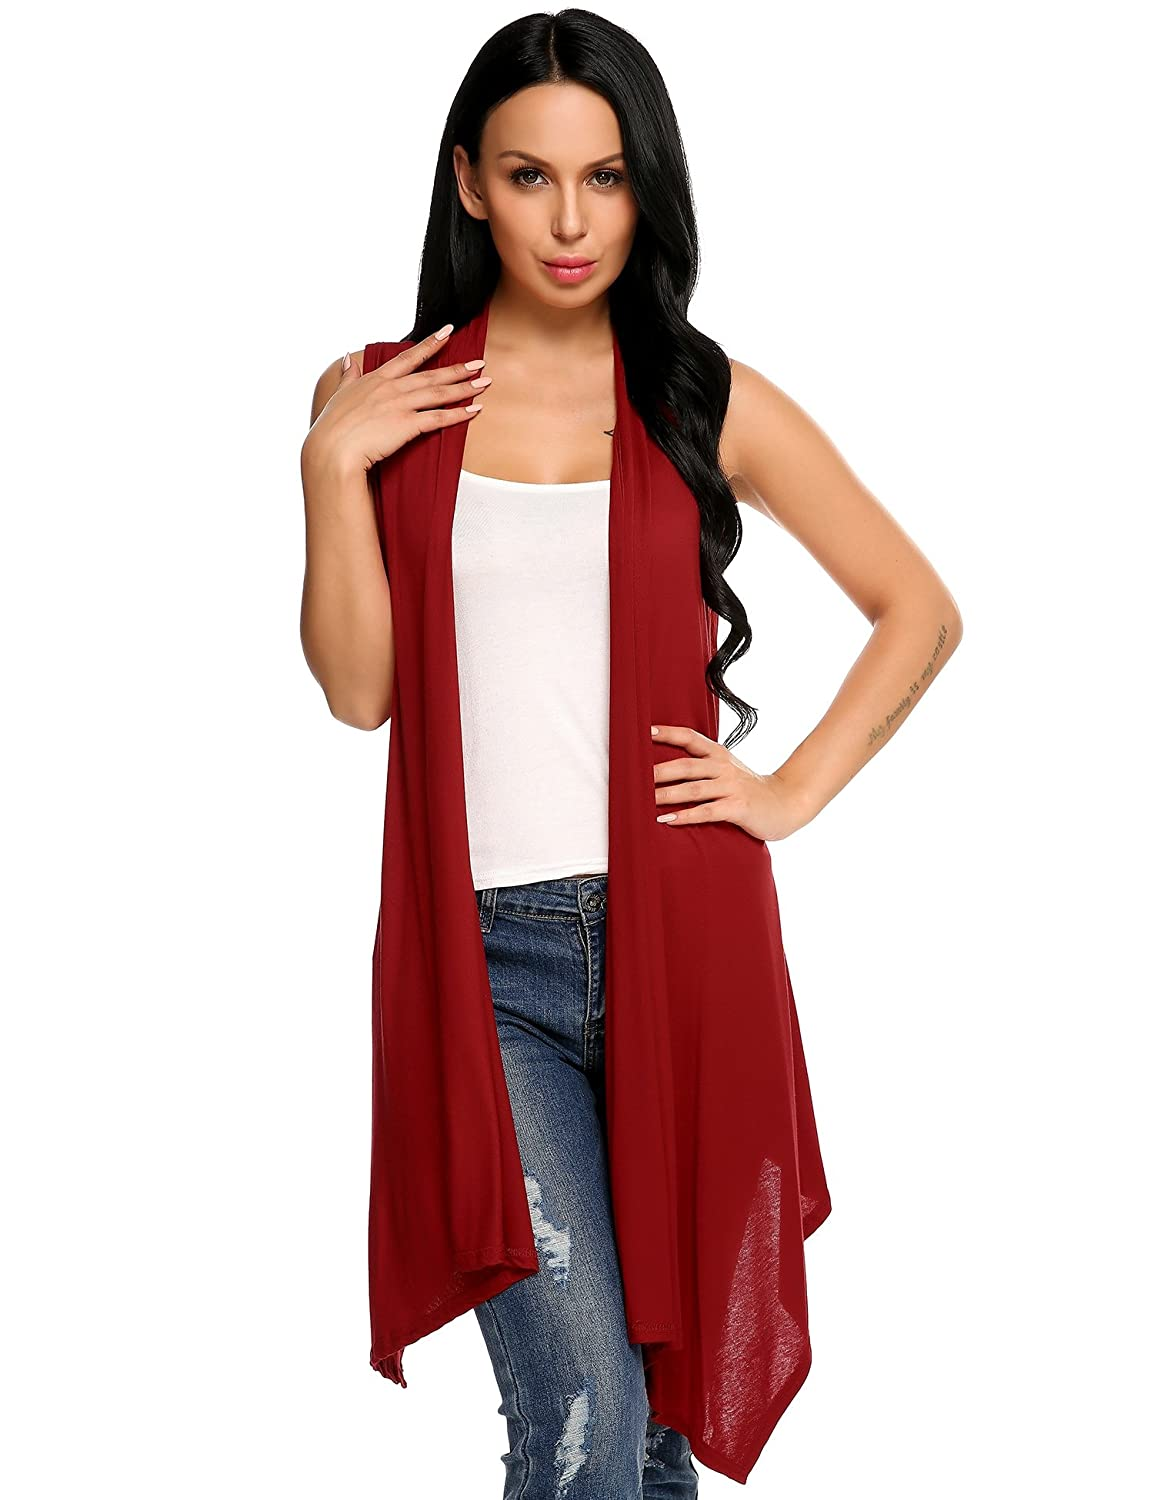 Beyove Women's Asymetric Hem Sleeveless Open Front Drape Cardigan Sweater Vest